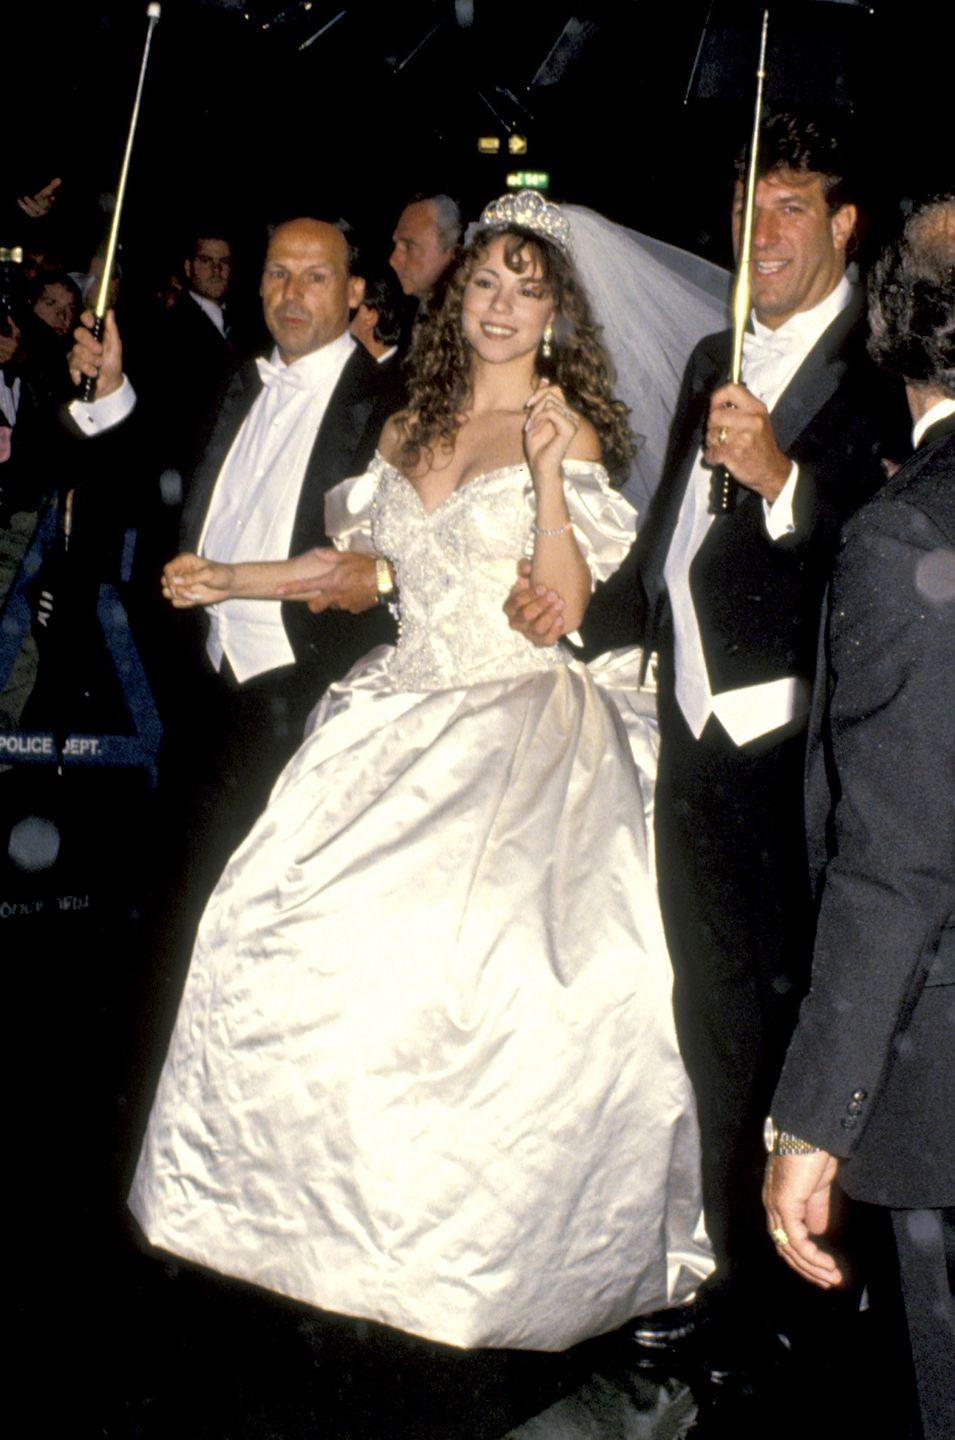 <p>In a lavish affair on June 5, 1993, singer Mariah Carey married Sony Music's Tommy Mottola wearing a massive $25,000 Vera Wang gown with a 27-foot-long train. That's right, <em>27 feet</em> of fabric. The couple divorced just four years later.</p>